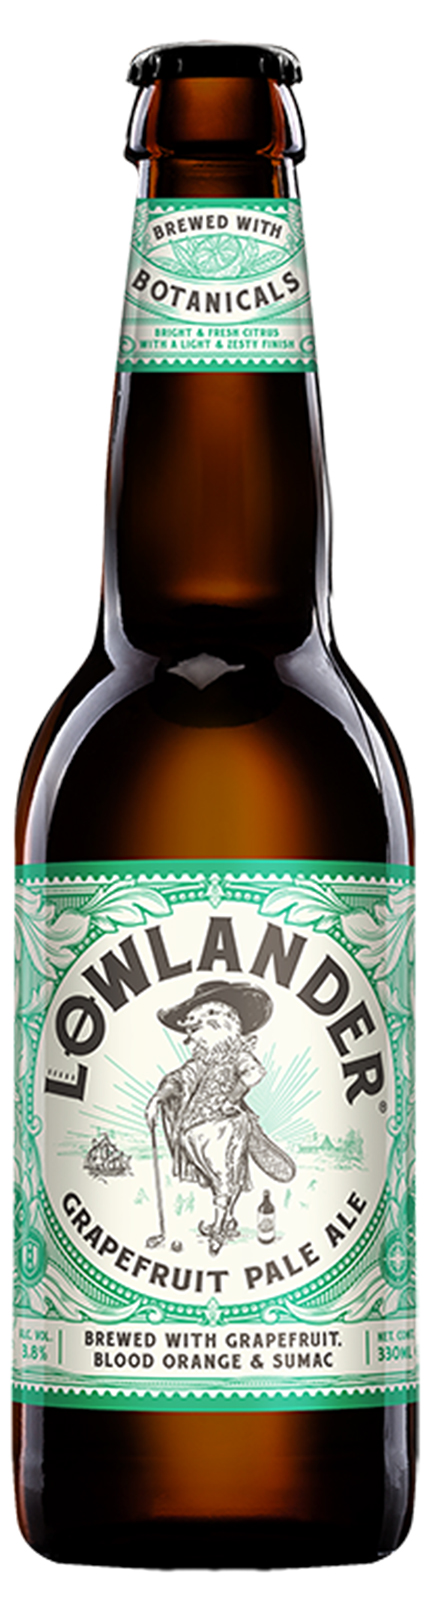 Lowlander_Visualisation_GPaleAle large